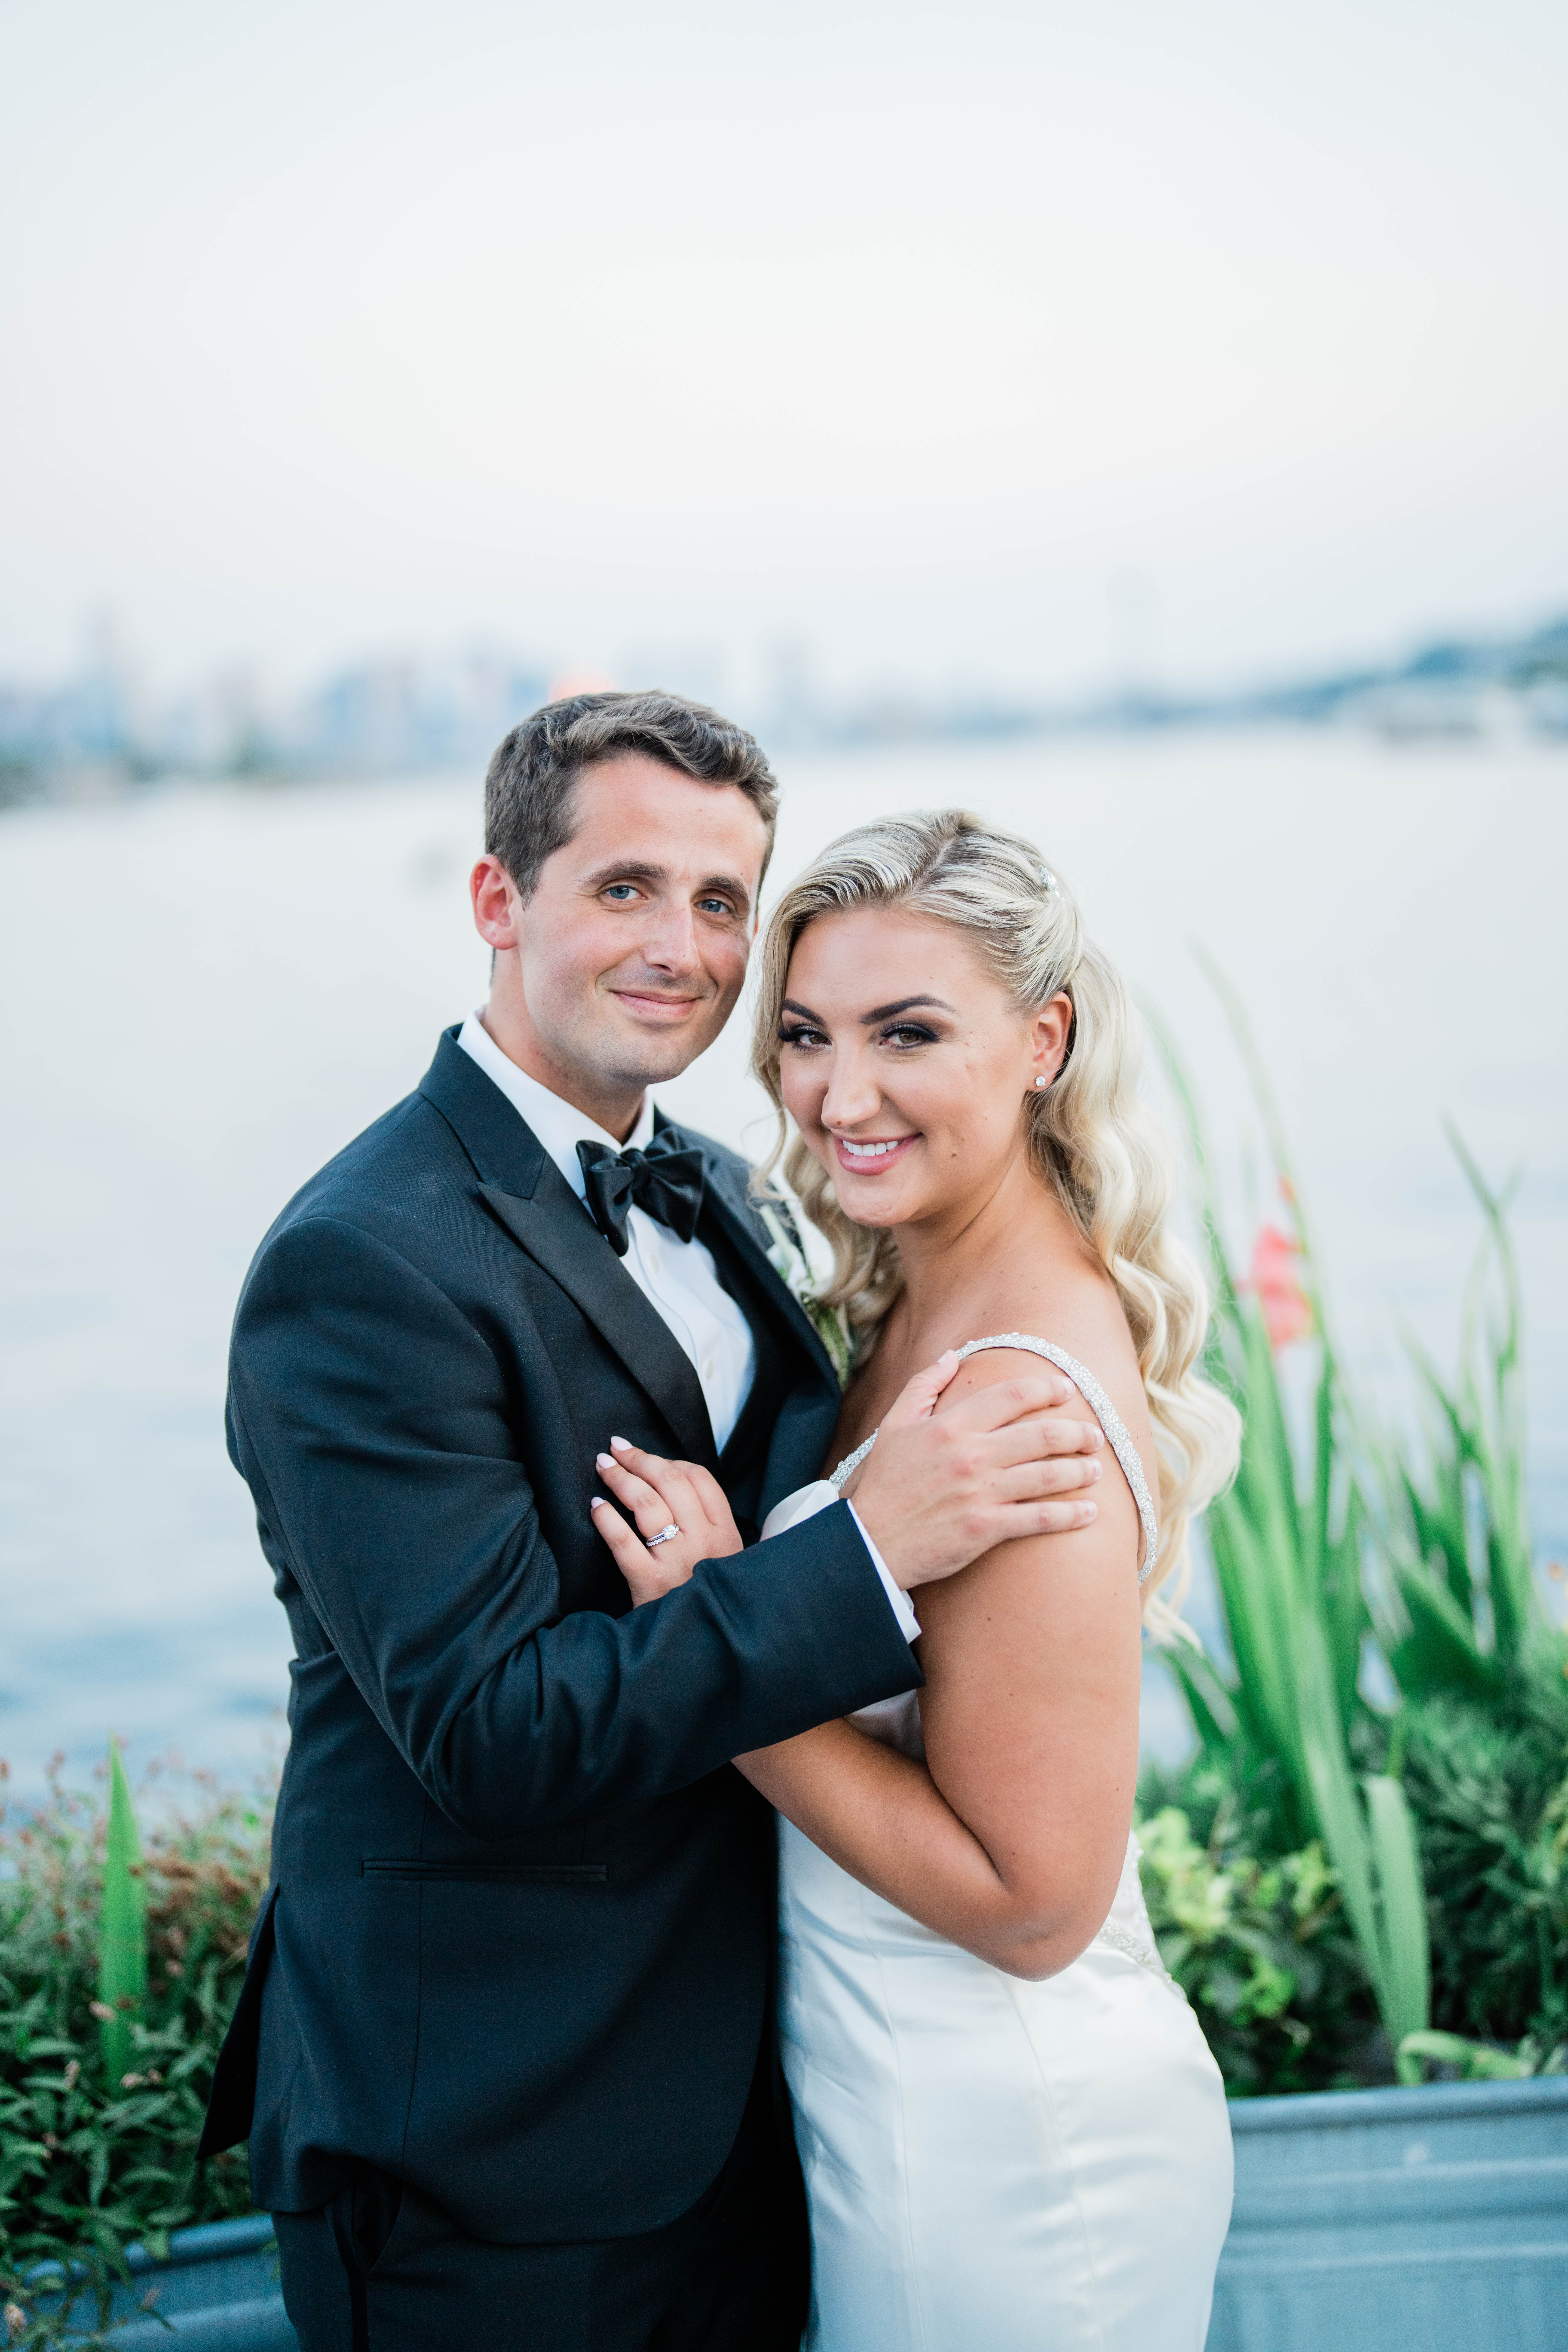 wedding photographer takes couples portraits with seattle skyline